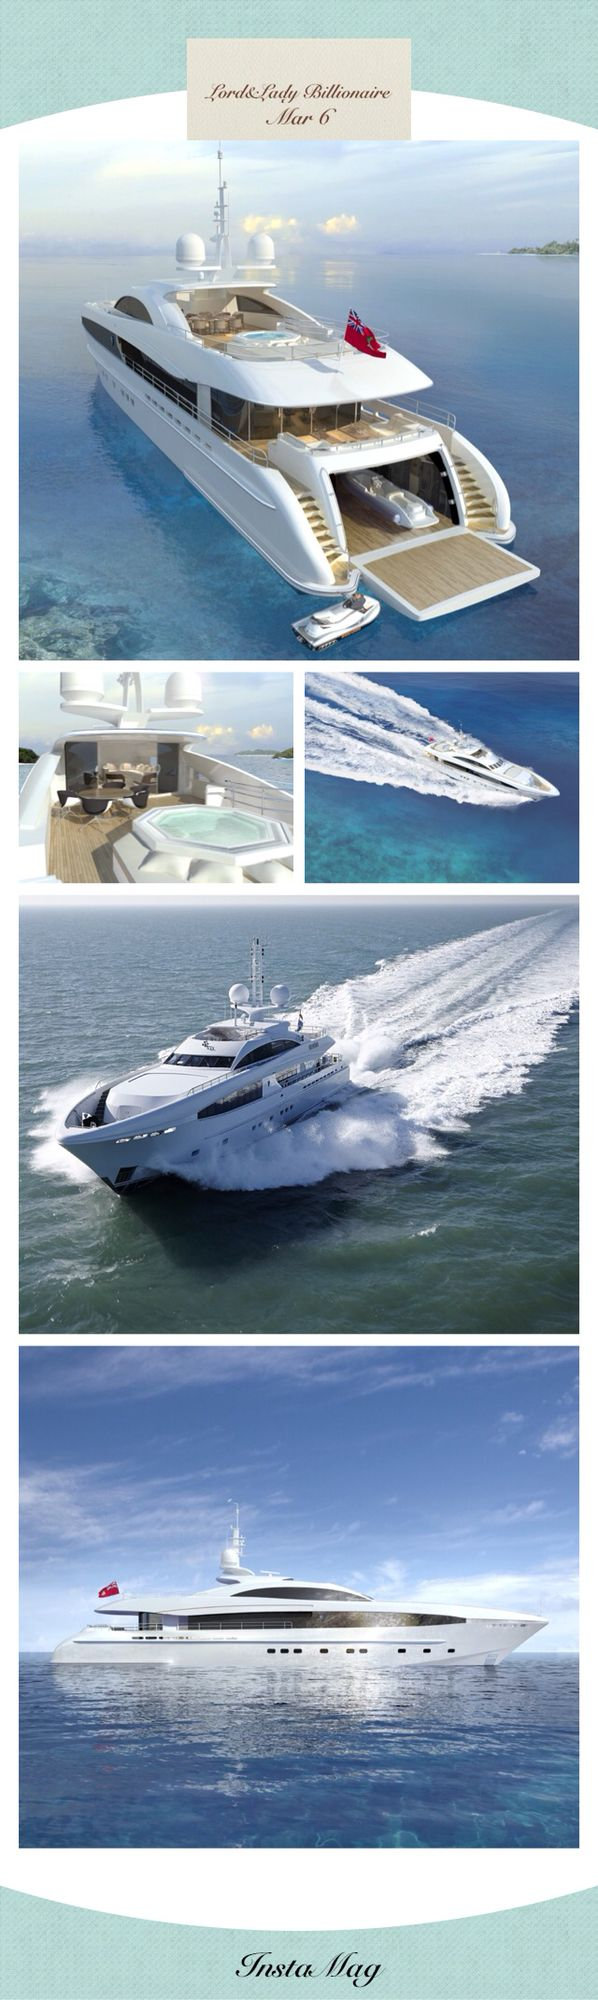 Heesen Yachts has launched over 170 vessels since it was founded in 1978, Galate…